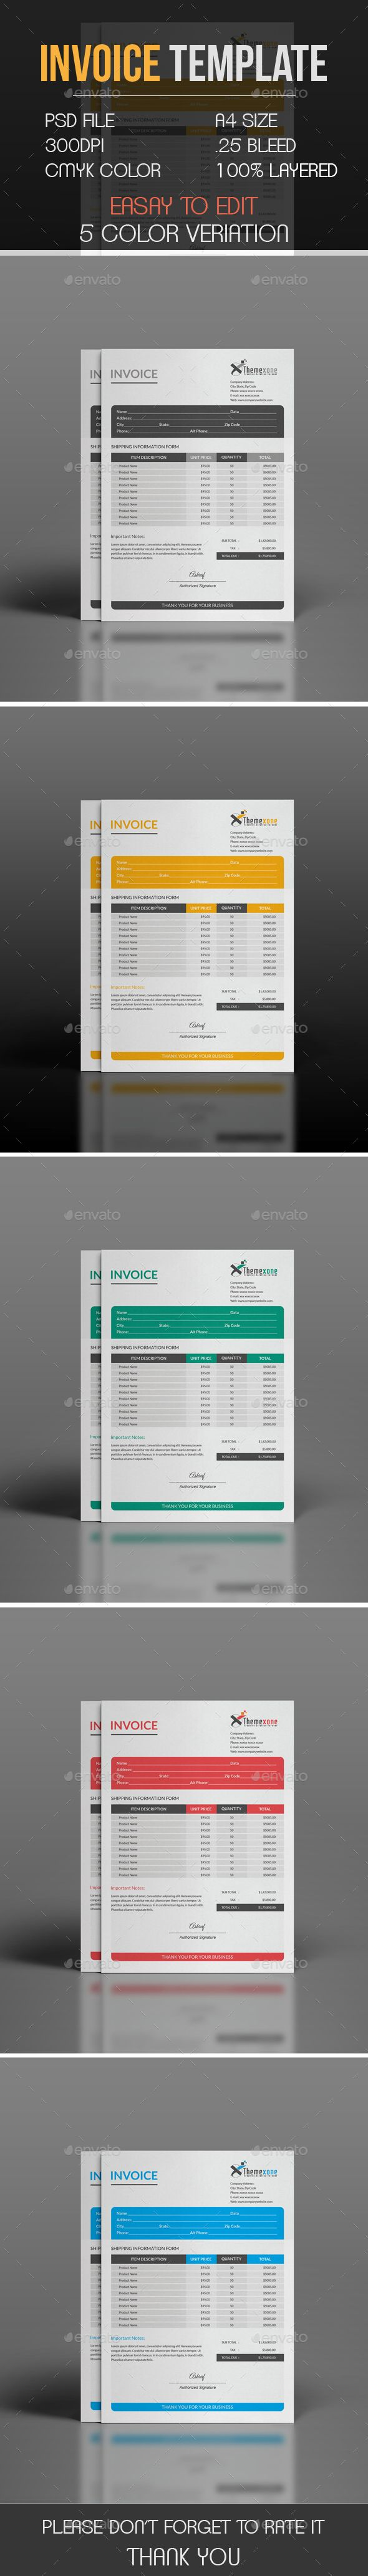 Invoice by themexone This is a Corporate